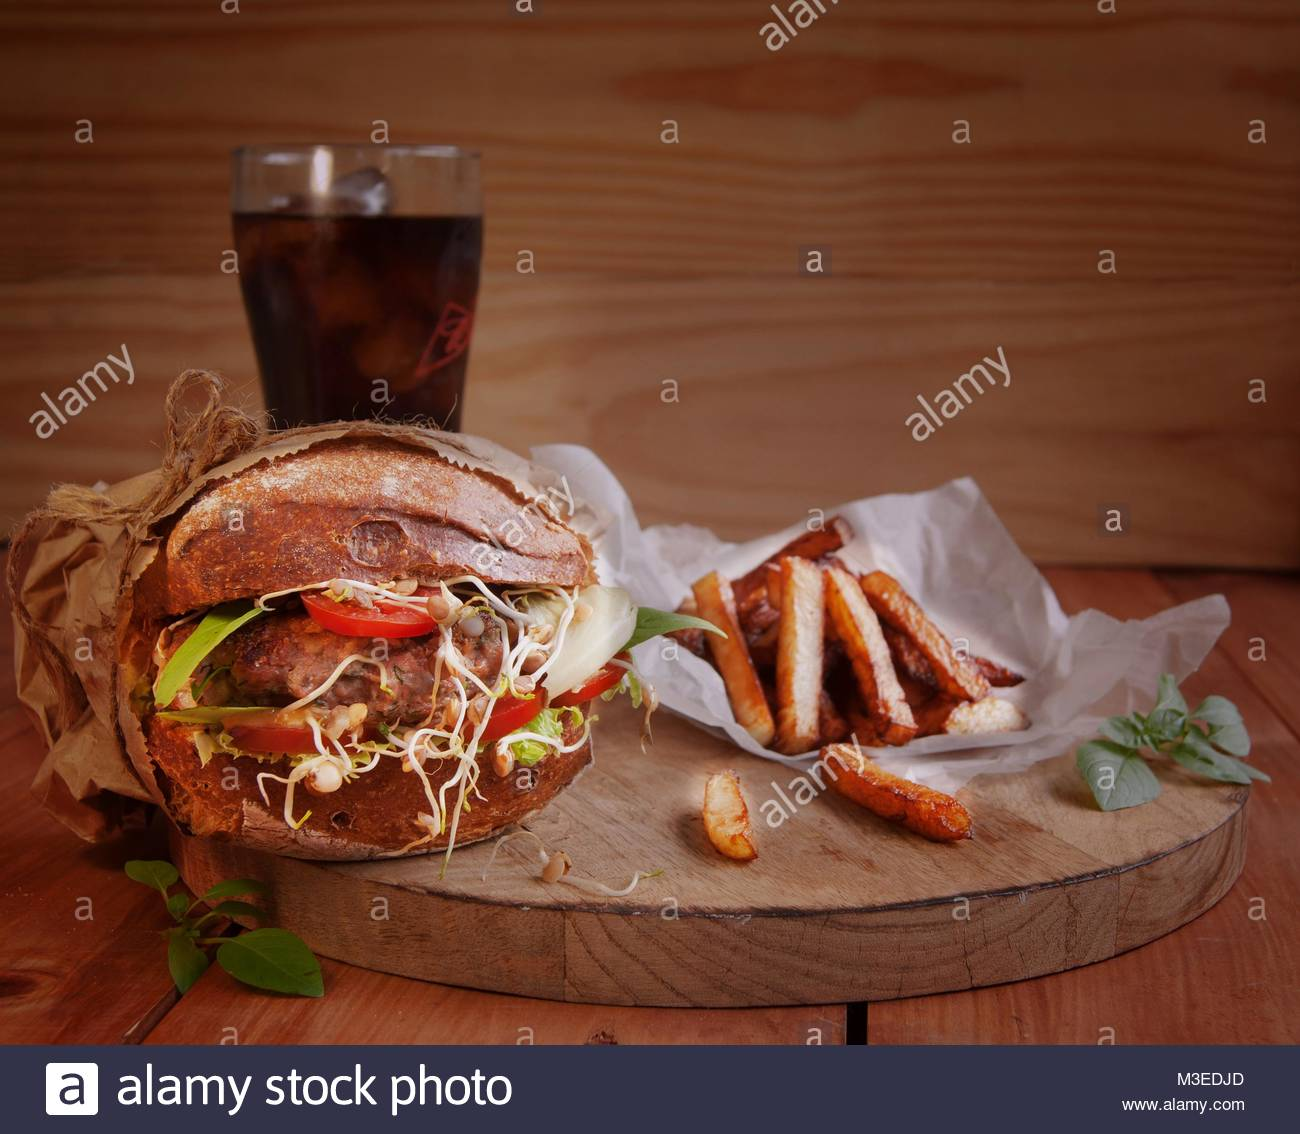 Hamburger with fries and a drink on the wooden - Stock Image